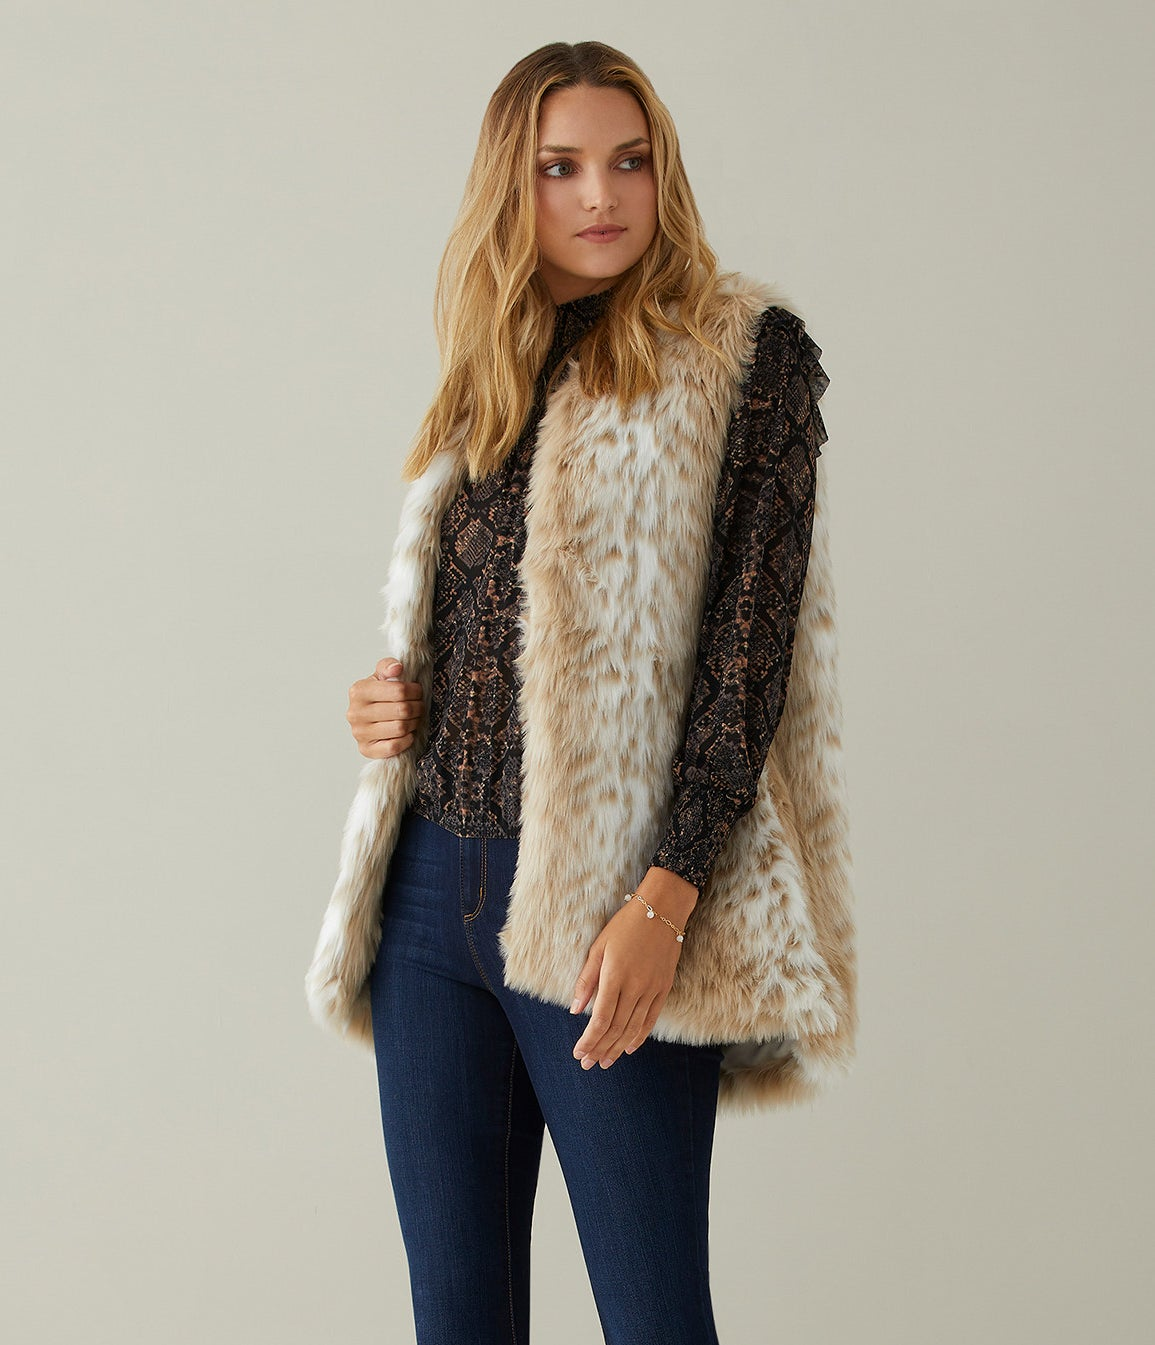 model wearing a light-colored faux fur vest and blue jeans